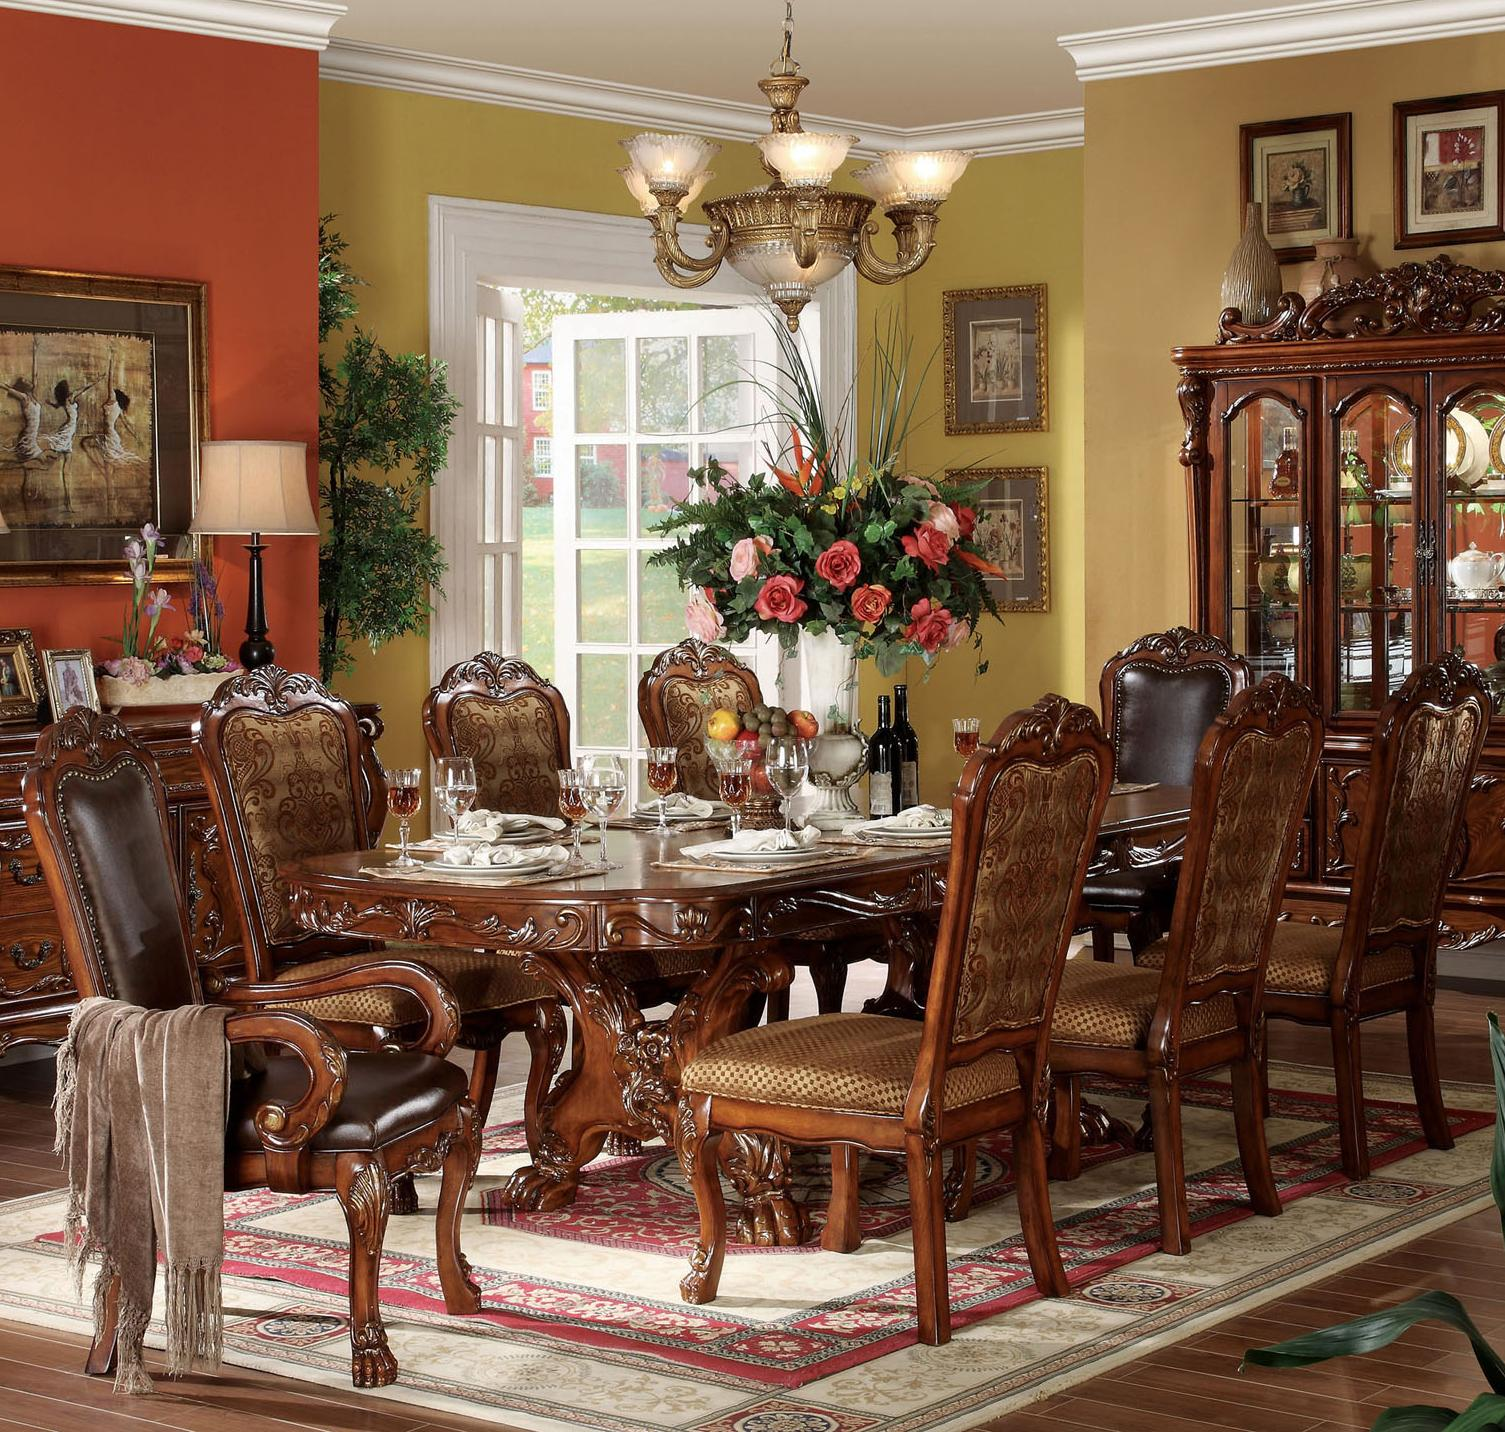 acme furniture dresden 9 piece dining set   item number  12150 2x54 6x53 acme furniture dresden 9 piece dining table and chair set   del      rh   delsolfurniture com